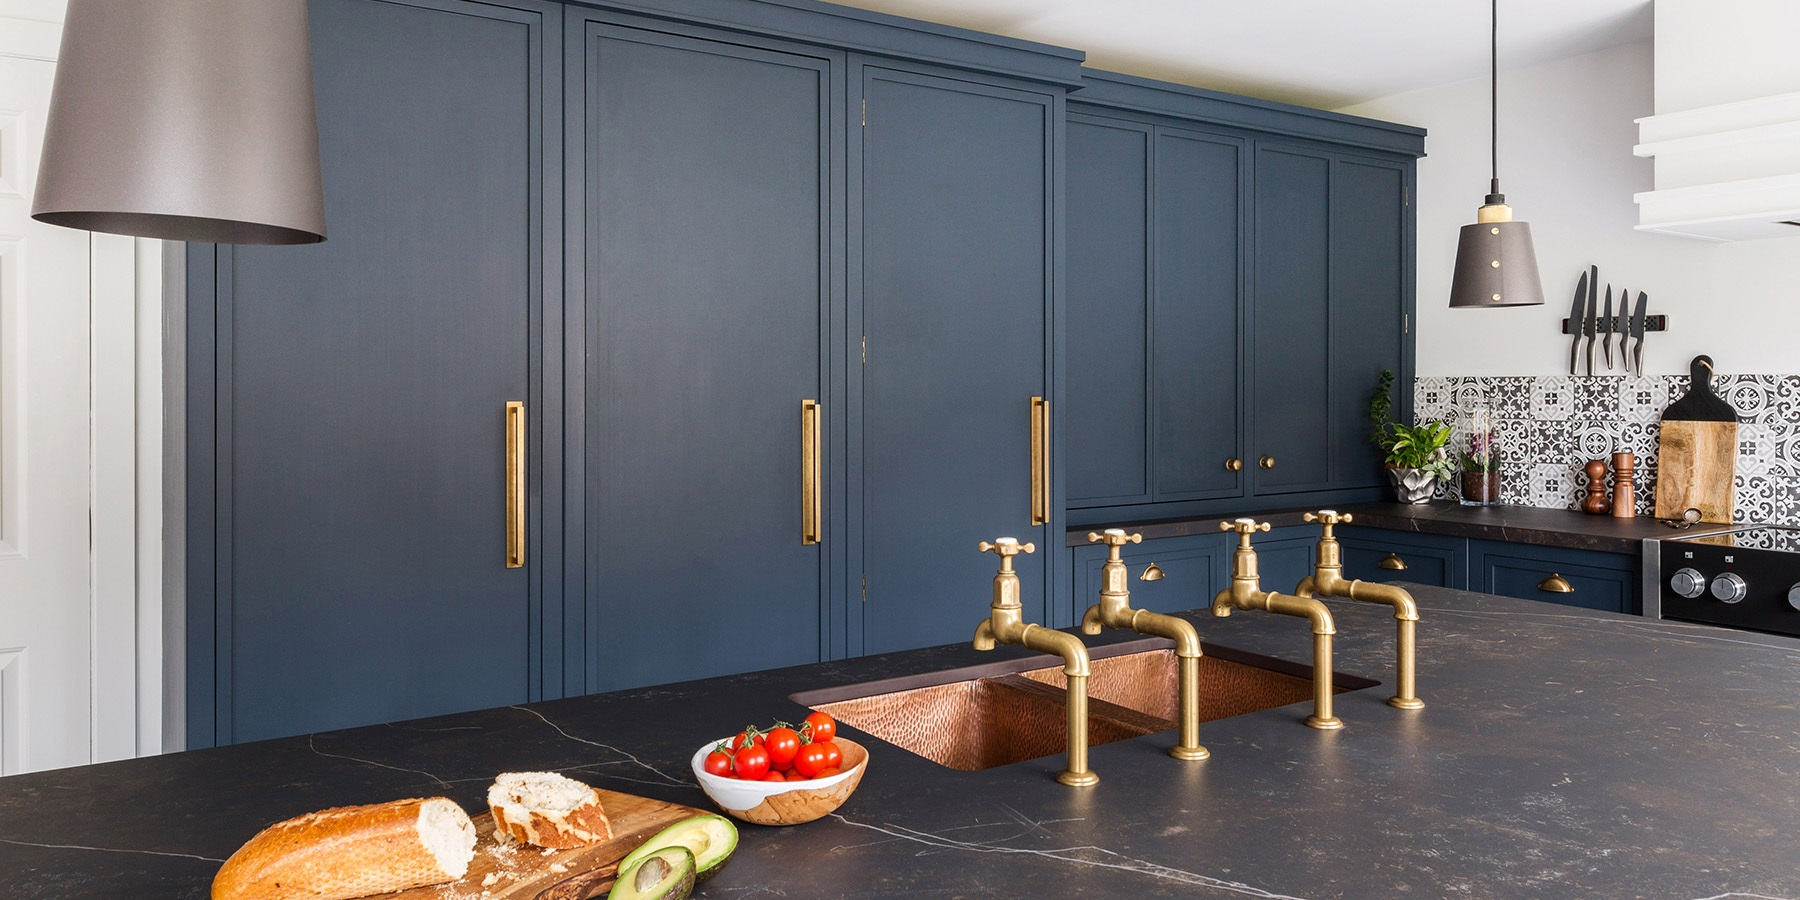 Burlanes Decolane Kitchen - Handmade Burlanes Decolane industrial style kitchen with central island, and floor to ceiling cabinetry.